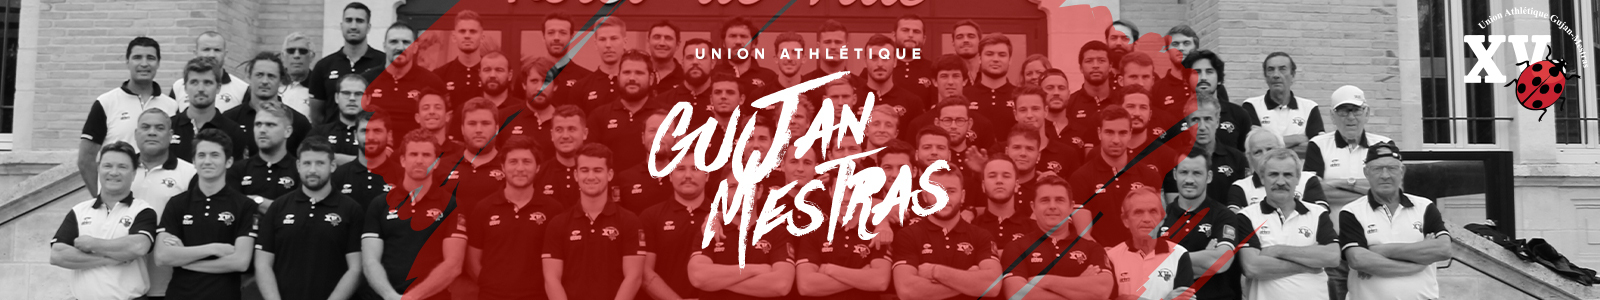 Union Athlétique GUJAN-MESTRAS Rugby : site officiel du club de rugby de GUJAN MESTRAS - clubeo